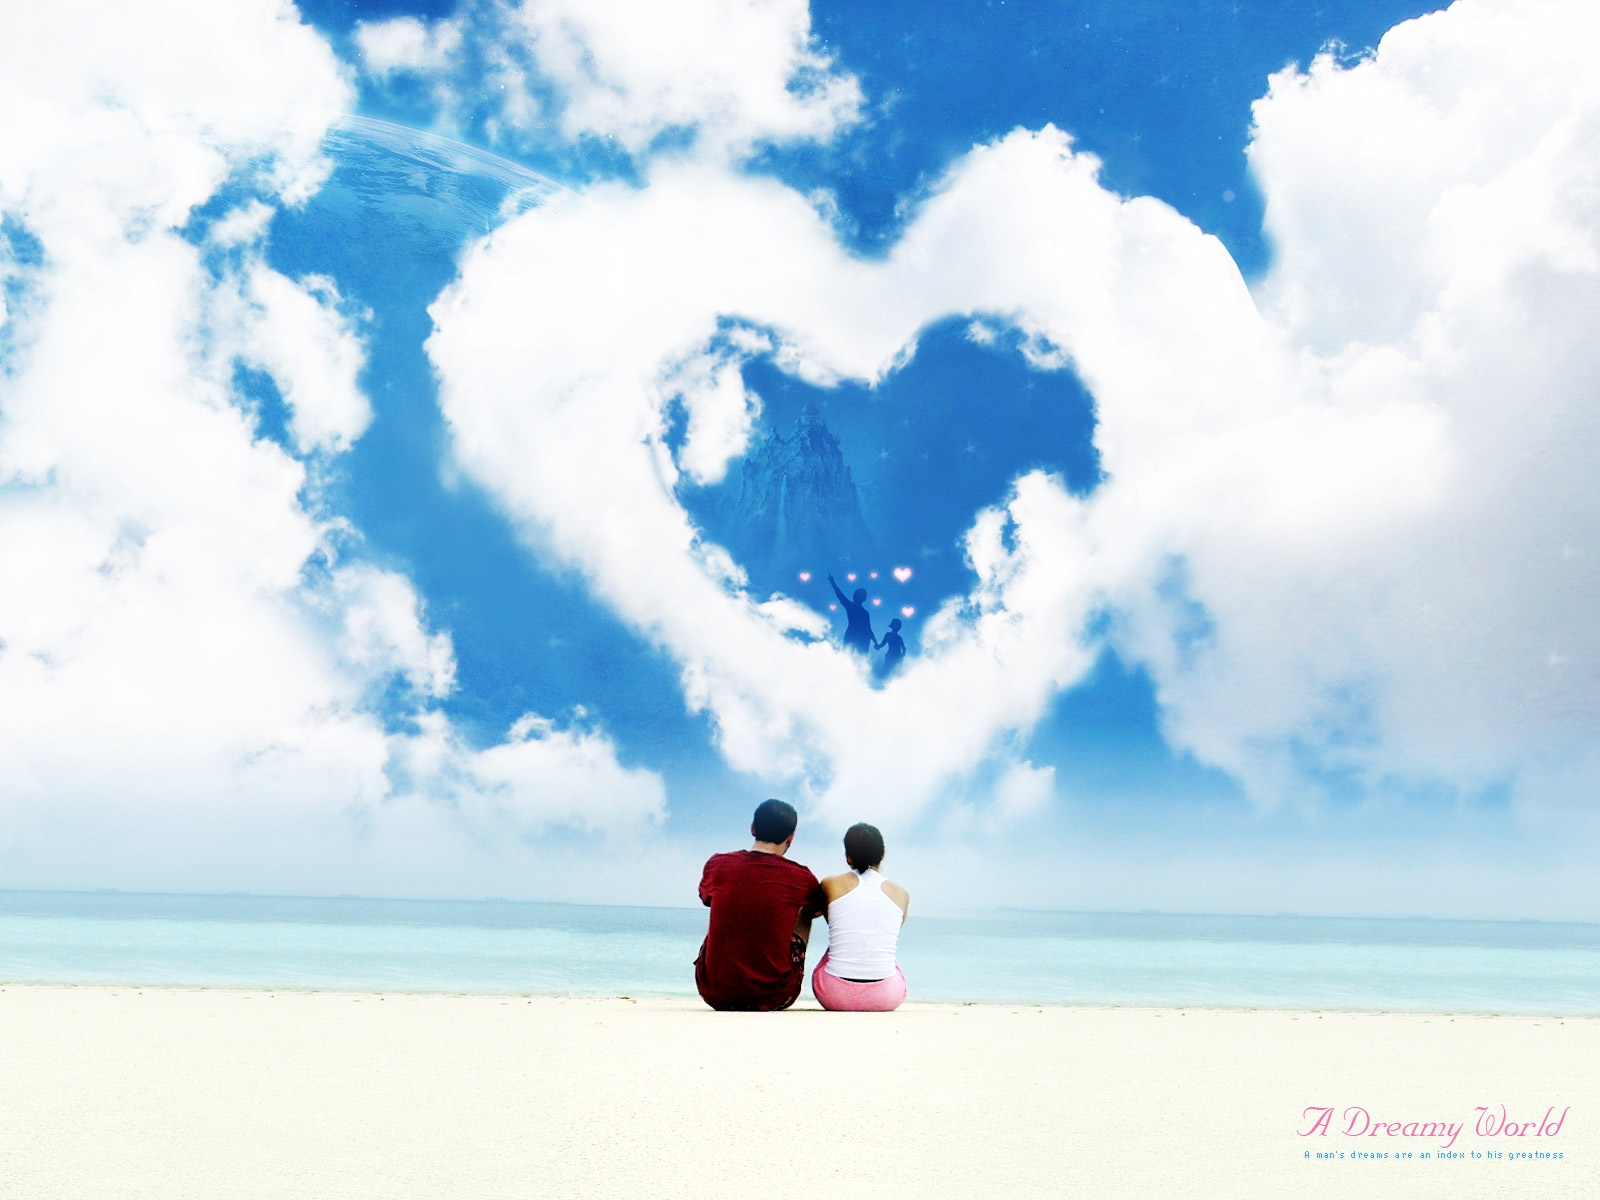 Wallpaper download in love - Dreamy Love World